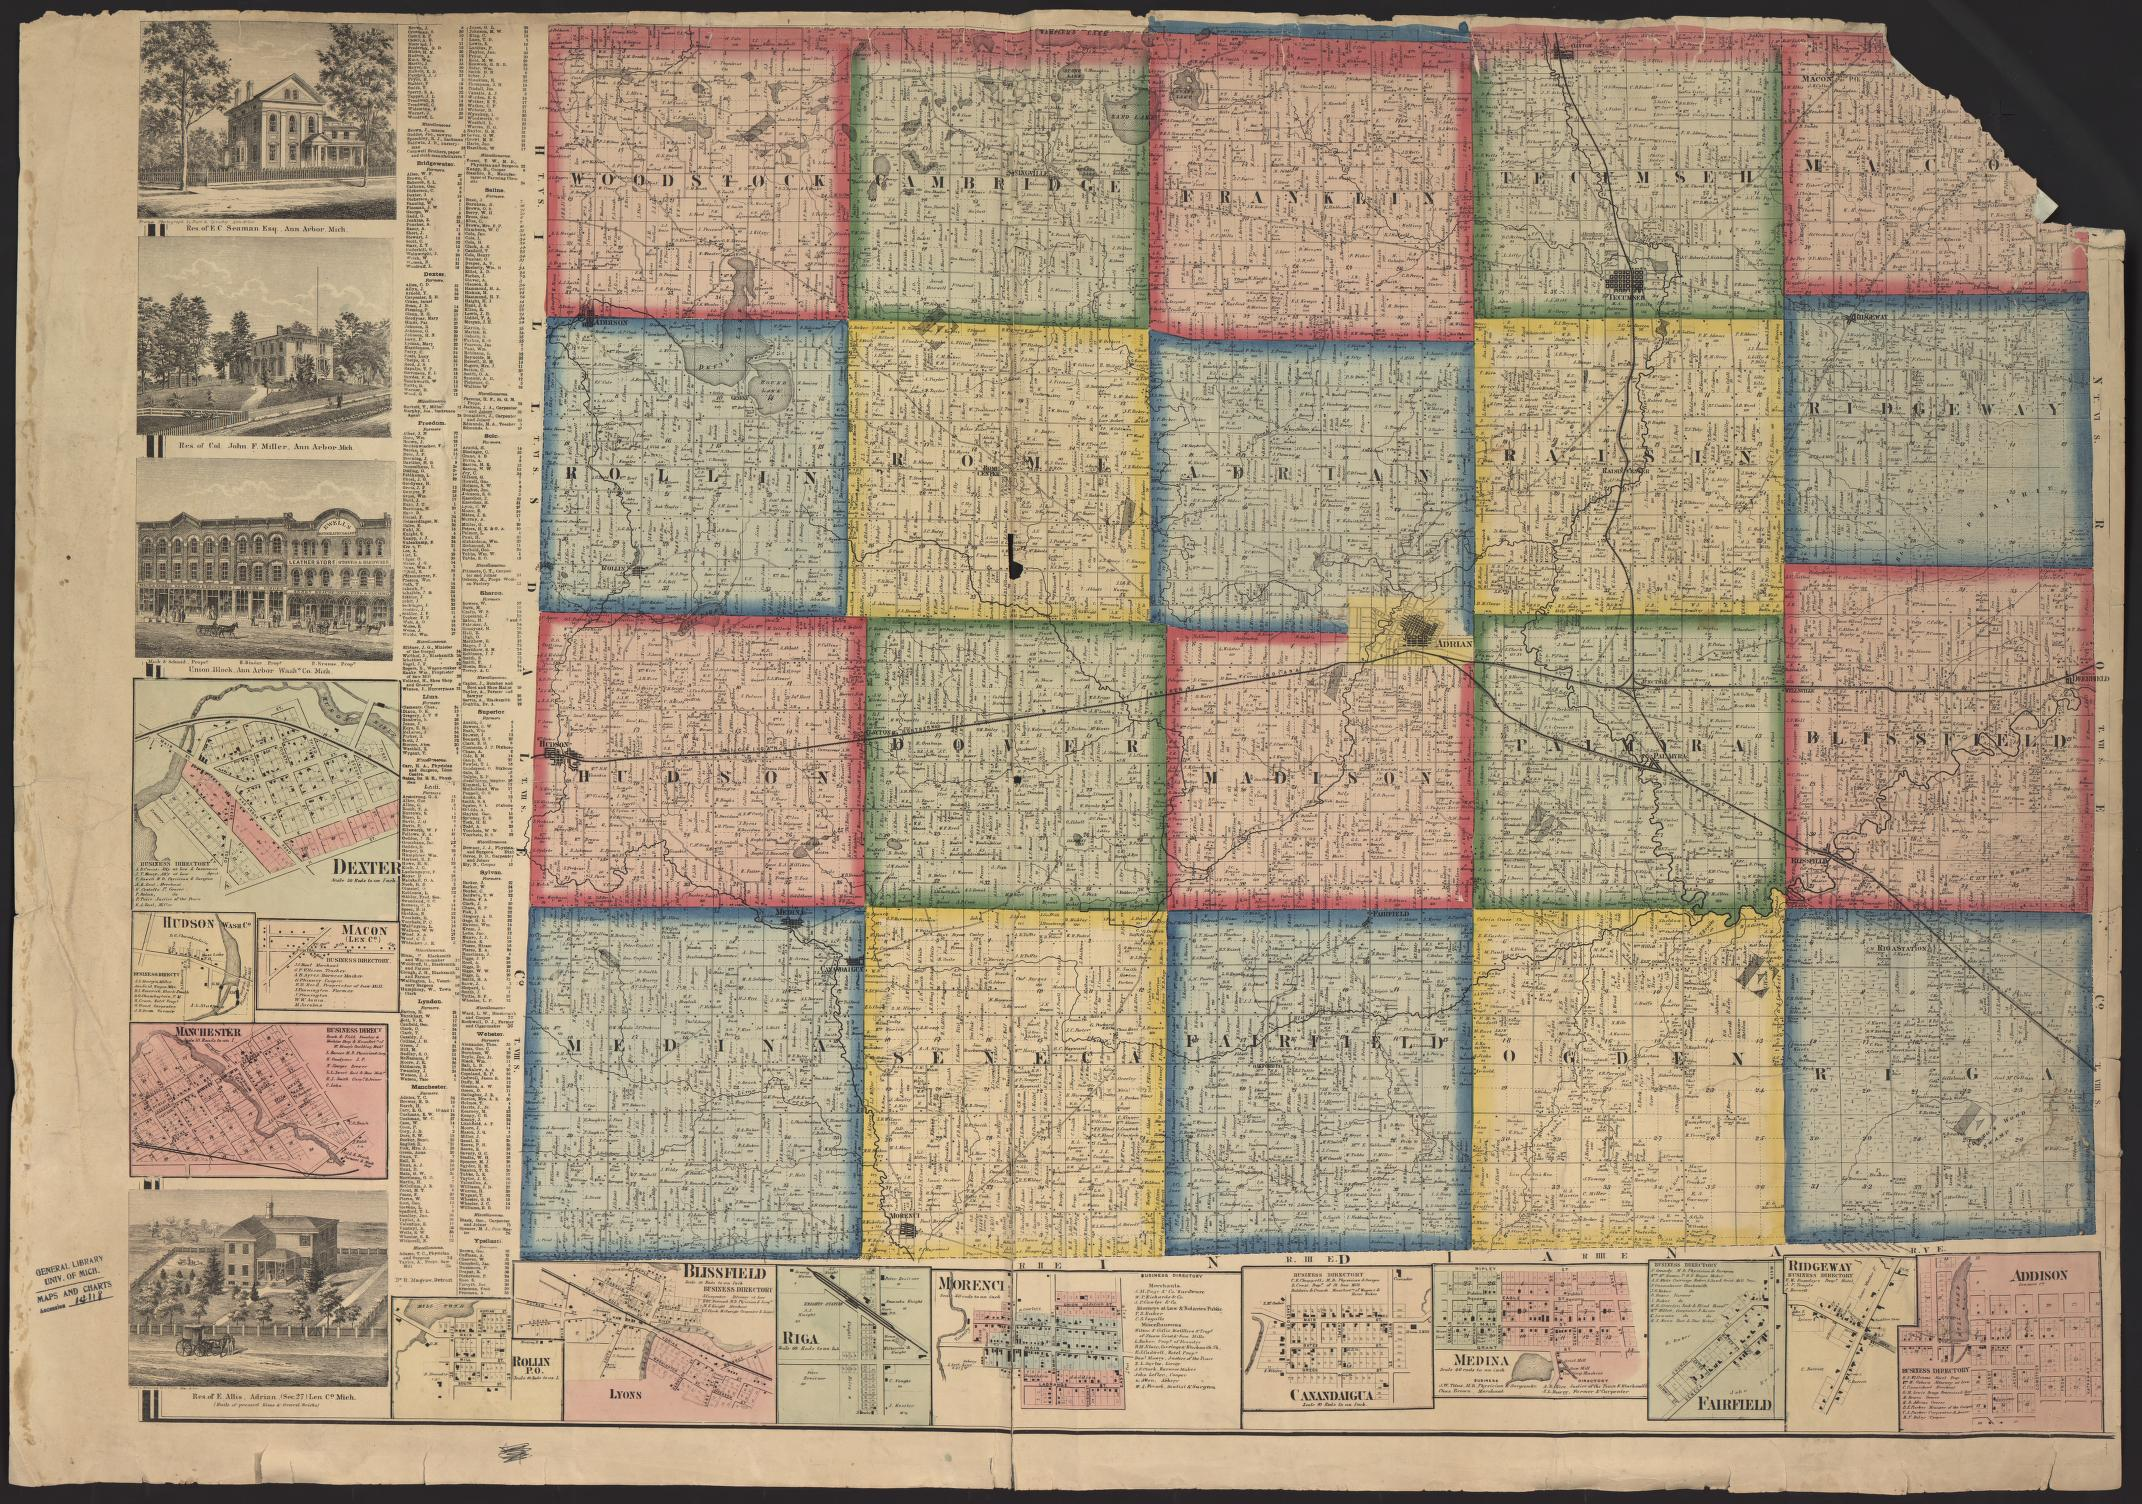 Addison Michigan Map.Um Clark Library Maps Map Of The Counties Of Washtenaw And Lenawee